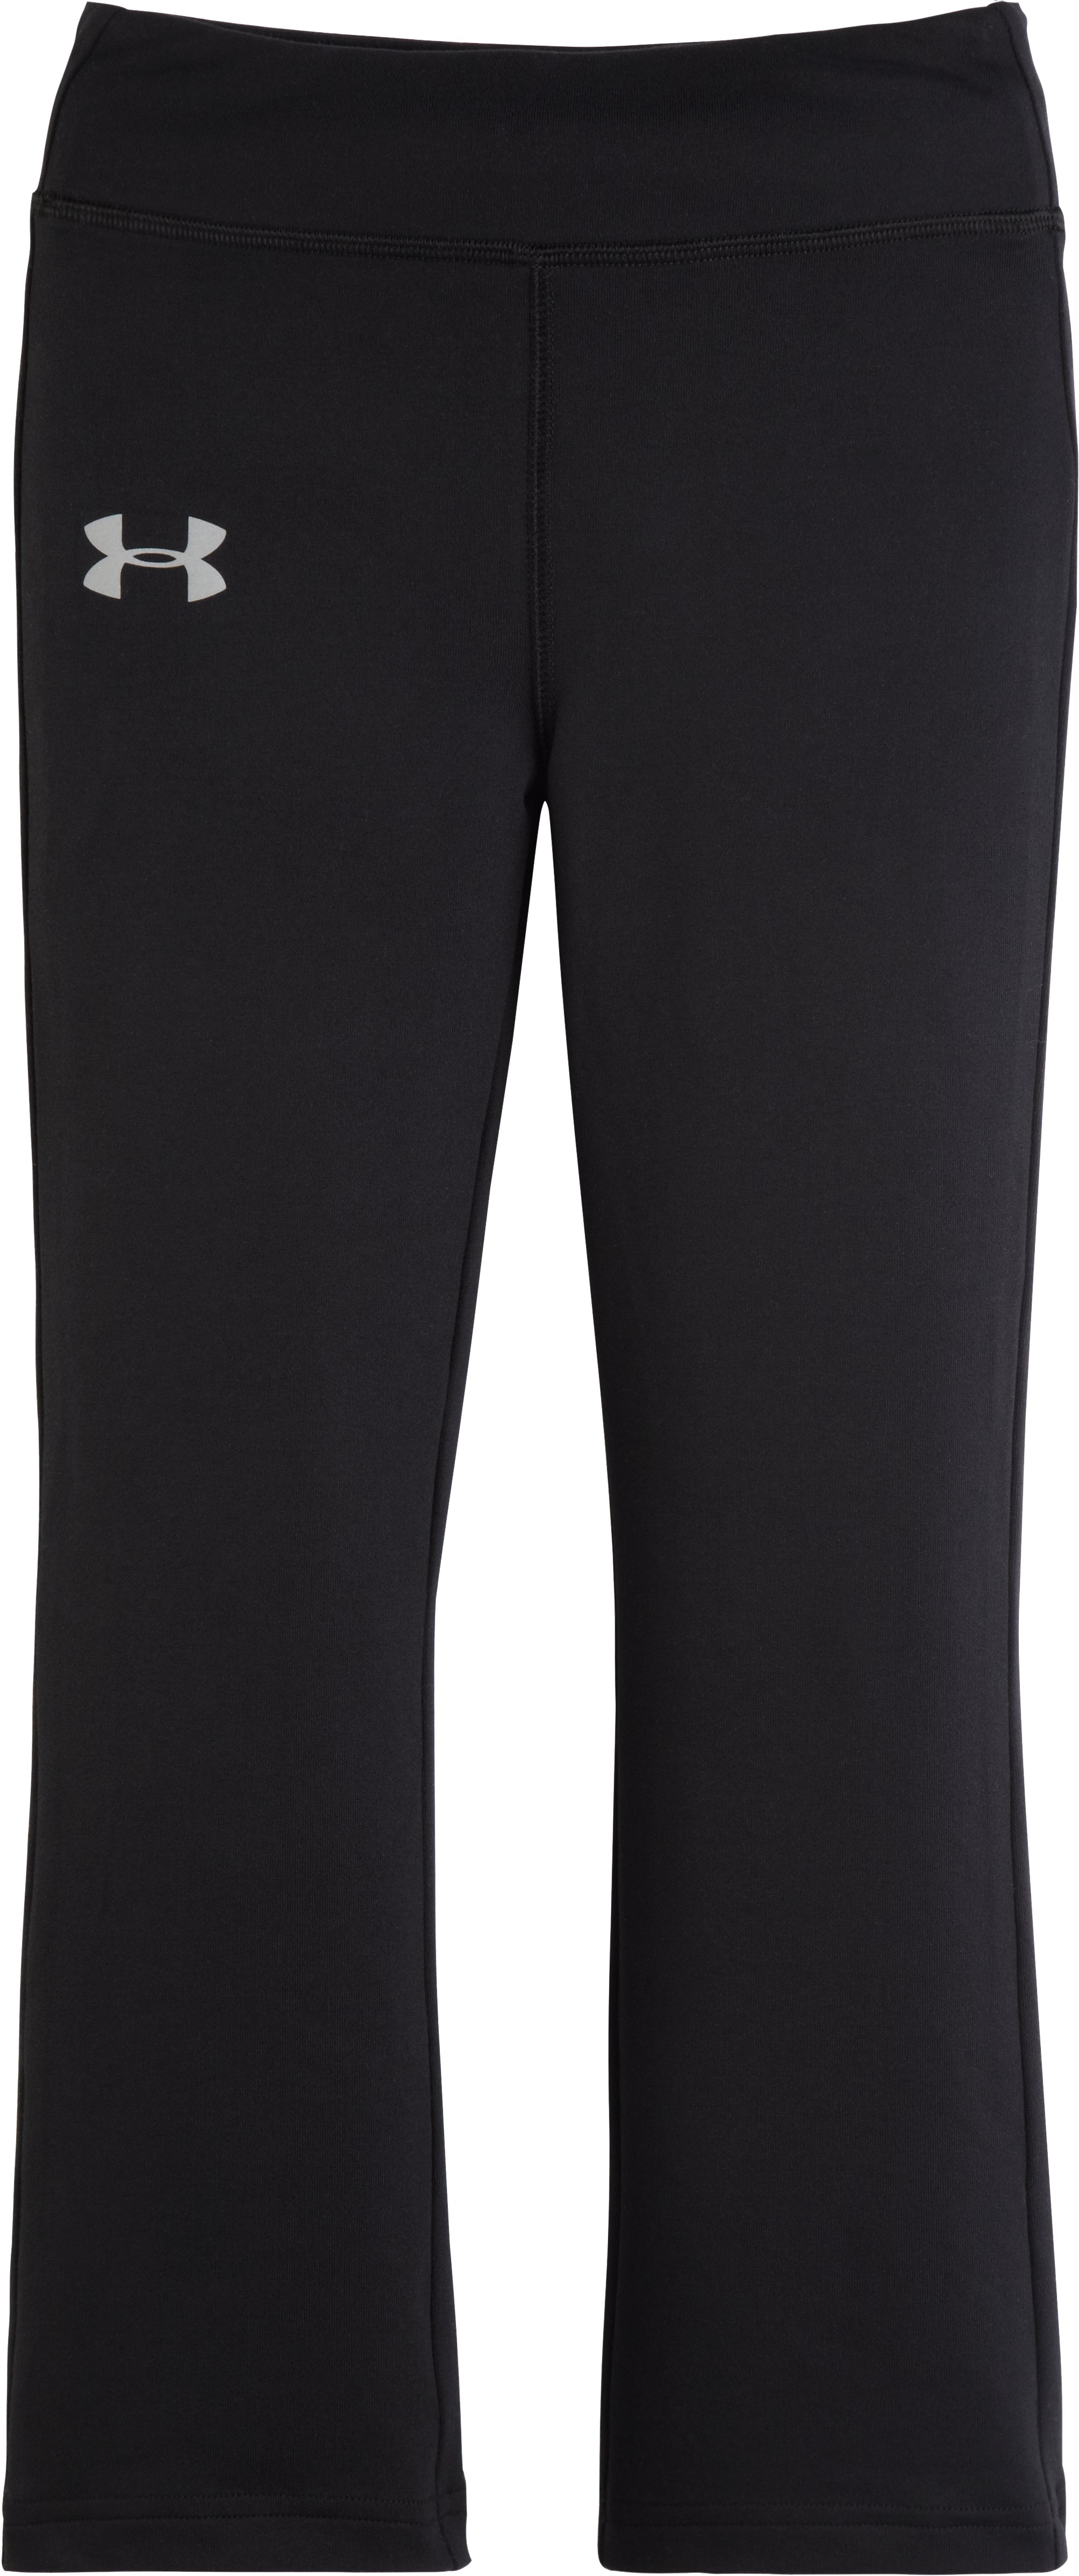 Girls' Pre-School UA Yoga Pants, Black , Laydown